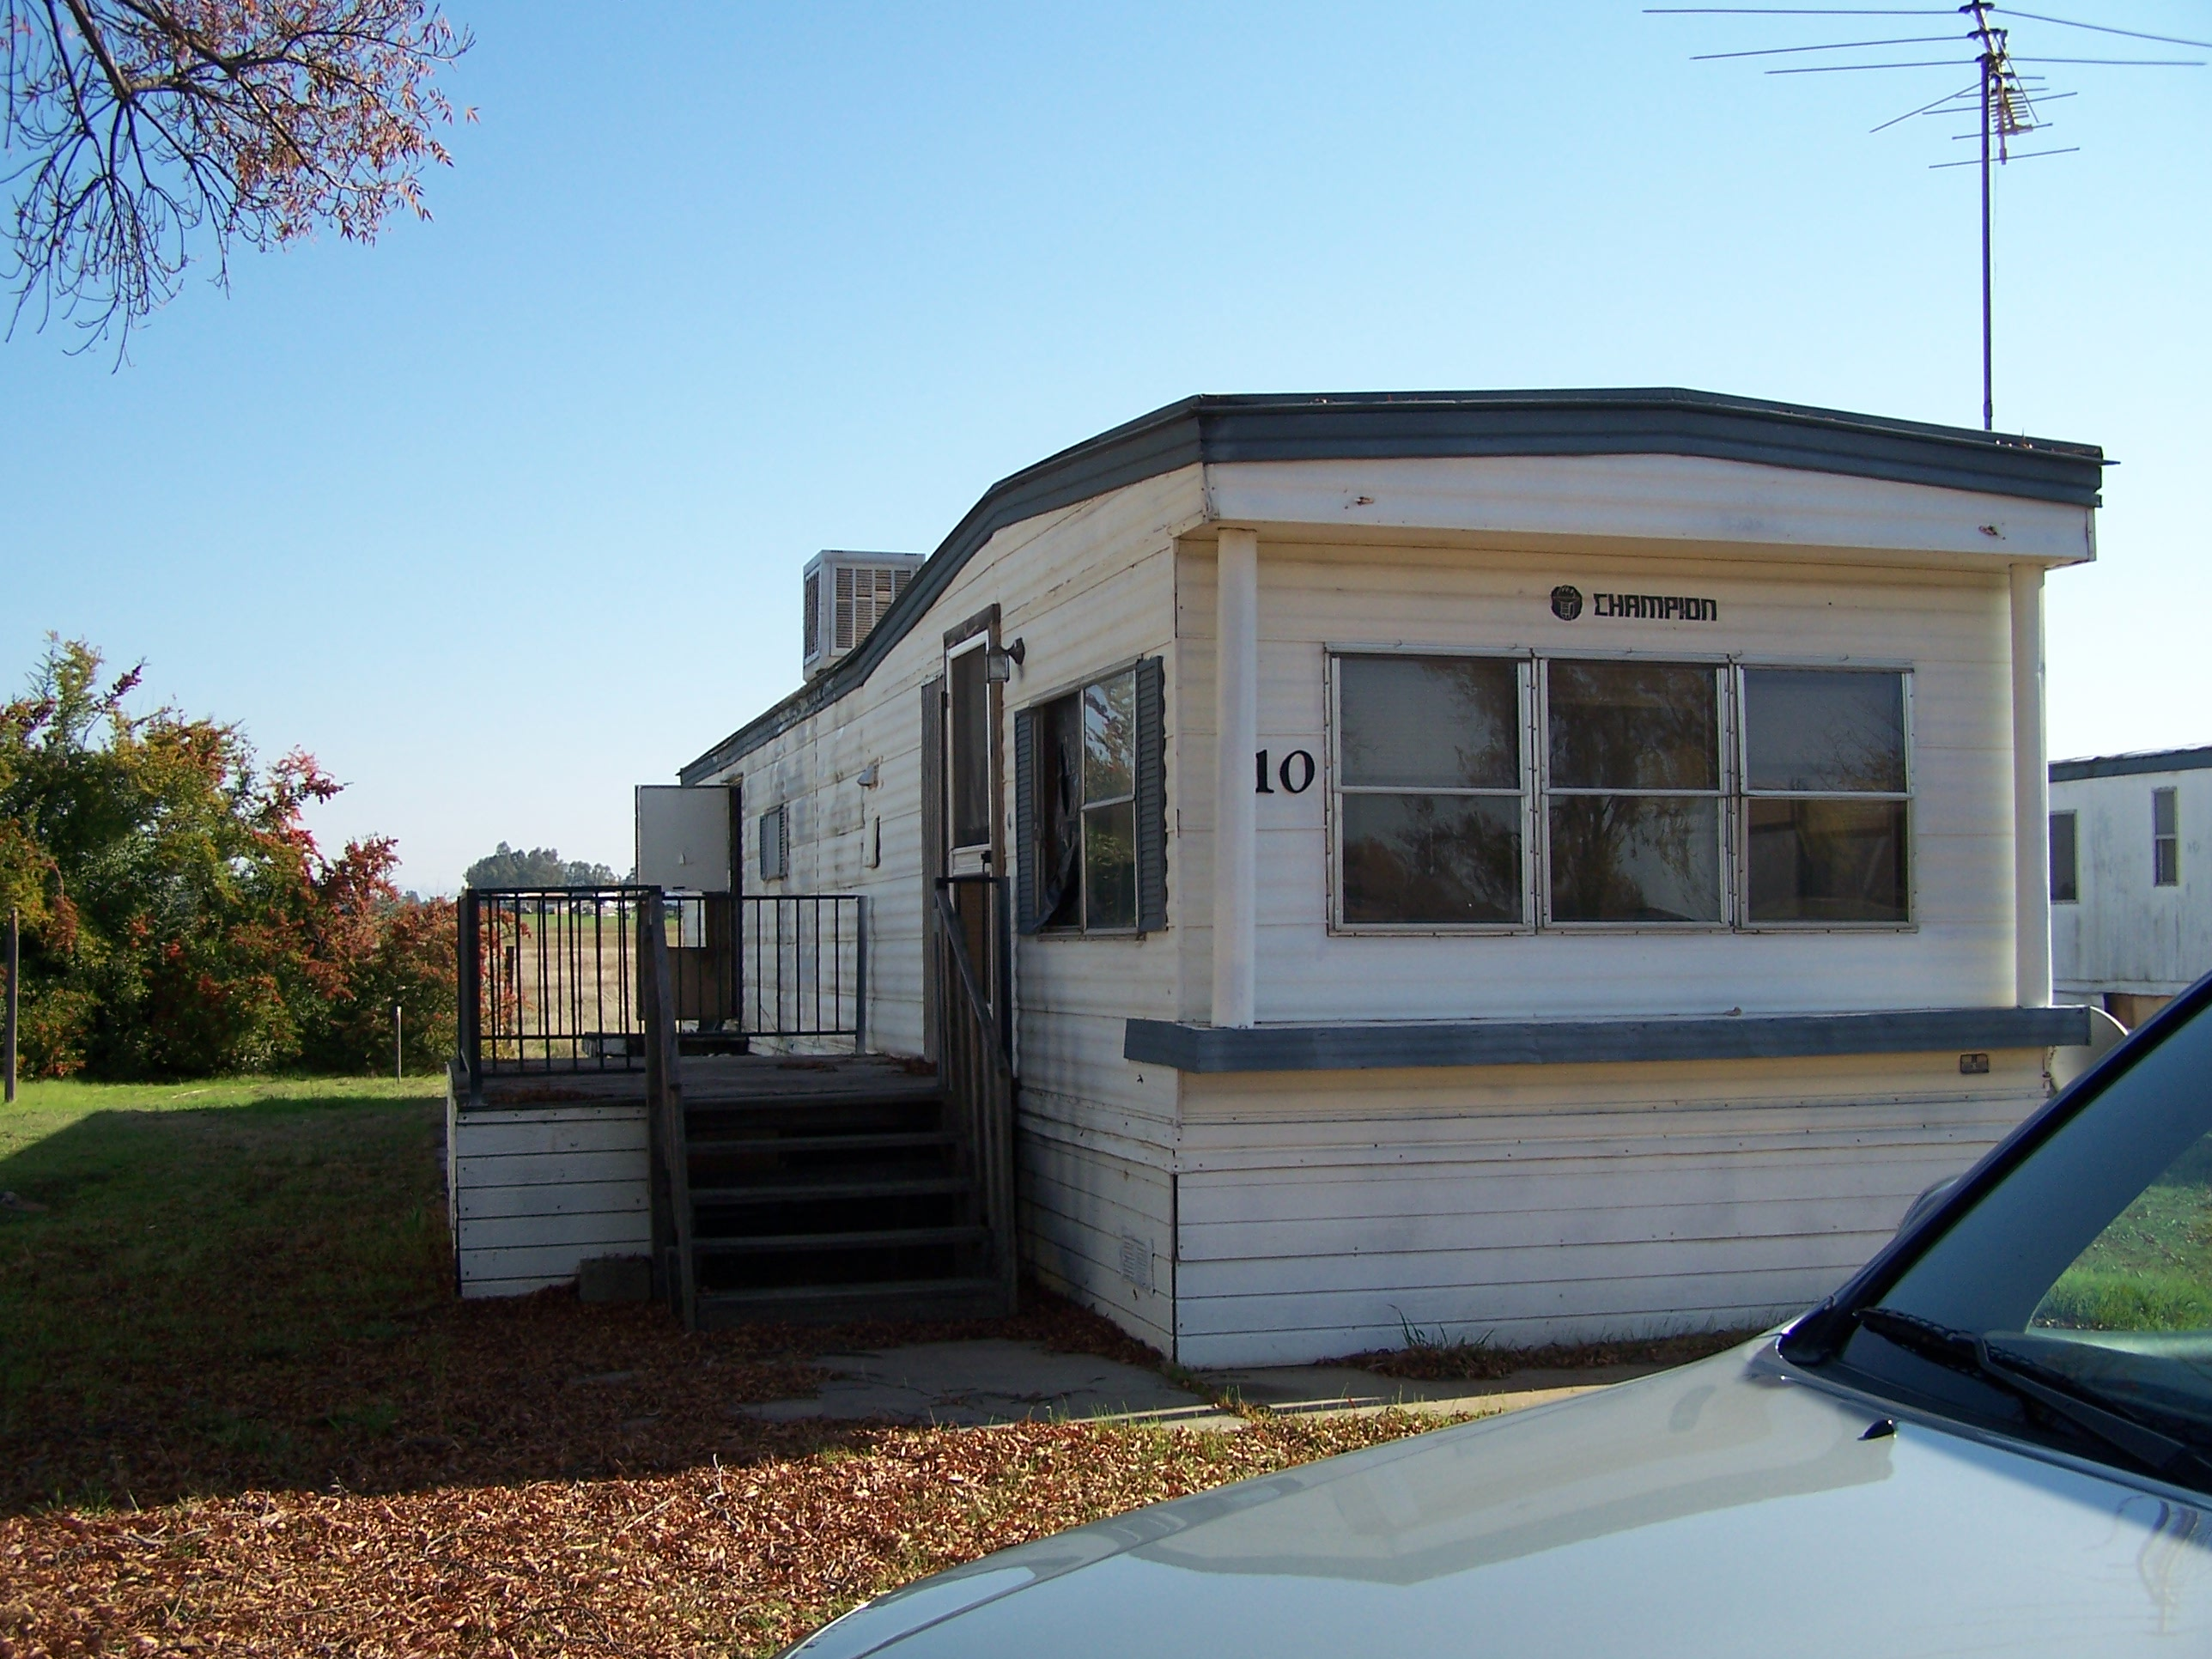 single wide mobile home additions with Jantomca Tripod on Freestanding Deck Need Ideas Decks Fencing Contractor 2 also Prefab Home Additions Cost Floor Audited China Suppliers They 295588 also The Texas Trailer Remodel also 488570259546153251 likewise Watch.